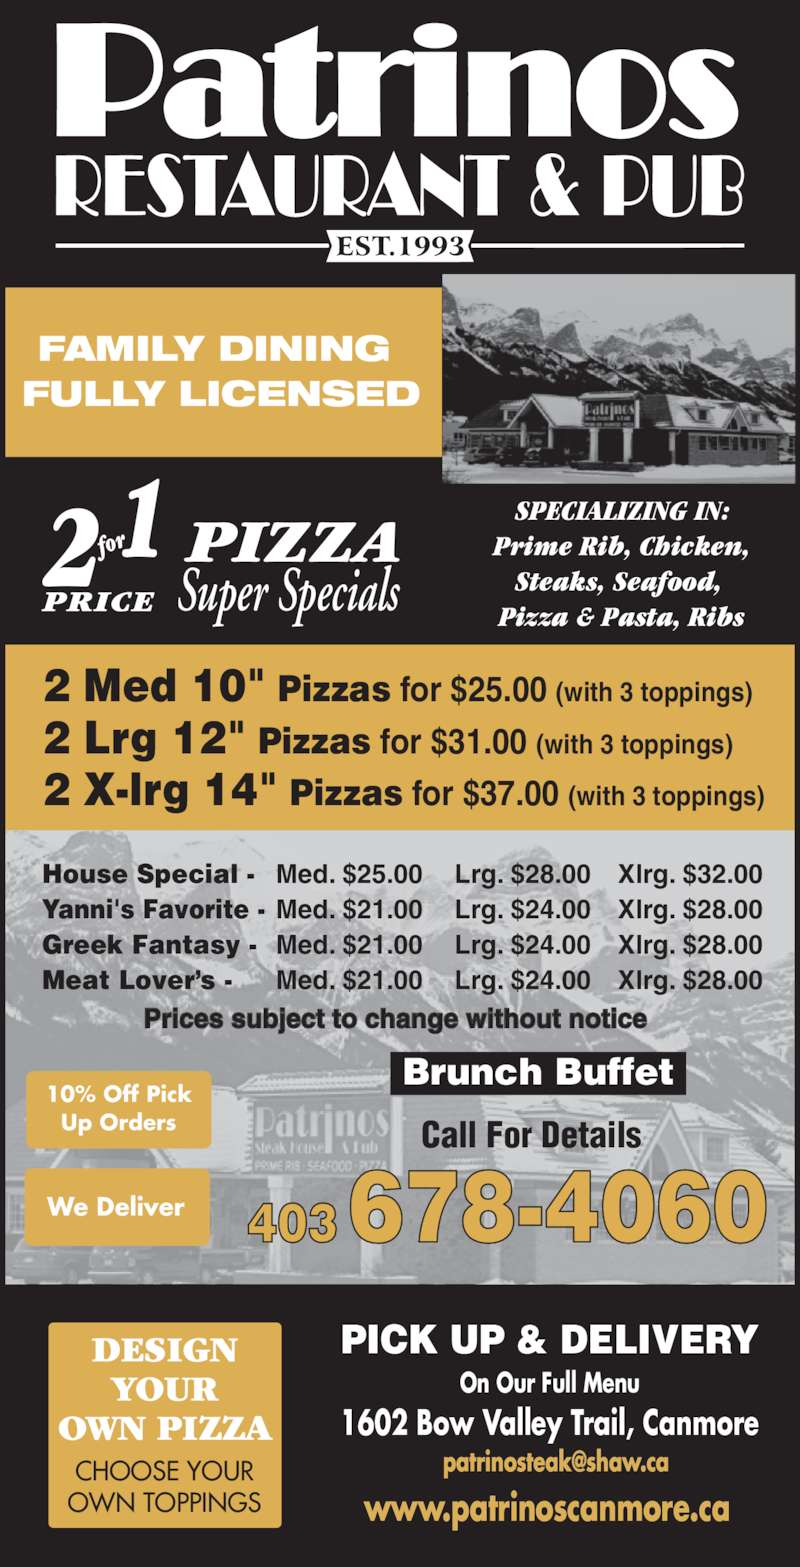 """Patrinos Steak House & Pub (4036784060) - Display Ad - FULLY LICENSED 2 Med 10"""" Pizzas for $25.00 (with 3 toppings) FAMILY DINING  2 Lrg 12"""" Pizzas for $31.00 (with 3 toppings) 2 X-lrg 14"""" Pizzas for $37.00 (with 3 toppings) SPECIALIZING IN: Prime Rib, Chicken, Steaks, Seafood,  Pizza & Pasta, Ribs Call For Details 403 678-4060 www.patrinoscanmore.ca 1602 Bow Valley Trail, Canmore House Special -  Med. $25.00 Lrg. $28.00 Xlrg. $32.00 Yanni's Favorite -  Med. $21.00 Lrg. $24.00 Xlrg. $28.00 Greek Fantasy -  Med. $21.00 Lrg. $24.00 Xlrg. $28.00 Meat Lover?s -  Med. $21.00 Lrg. $24.00 Xlrg. $28.00 PICK UP & DELIVERY On Our Full Menu Prices subject to change without notice Brunch Buffet DESIGN YOUR OWN PIZZA CHOOSE YOUR OWN TOPPINGS 10% Off Pick Up Orders We Deliver PIZZA2 1 for Super SpecialsPRICE"""